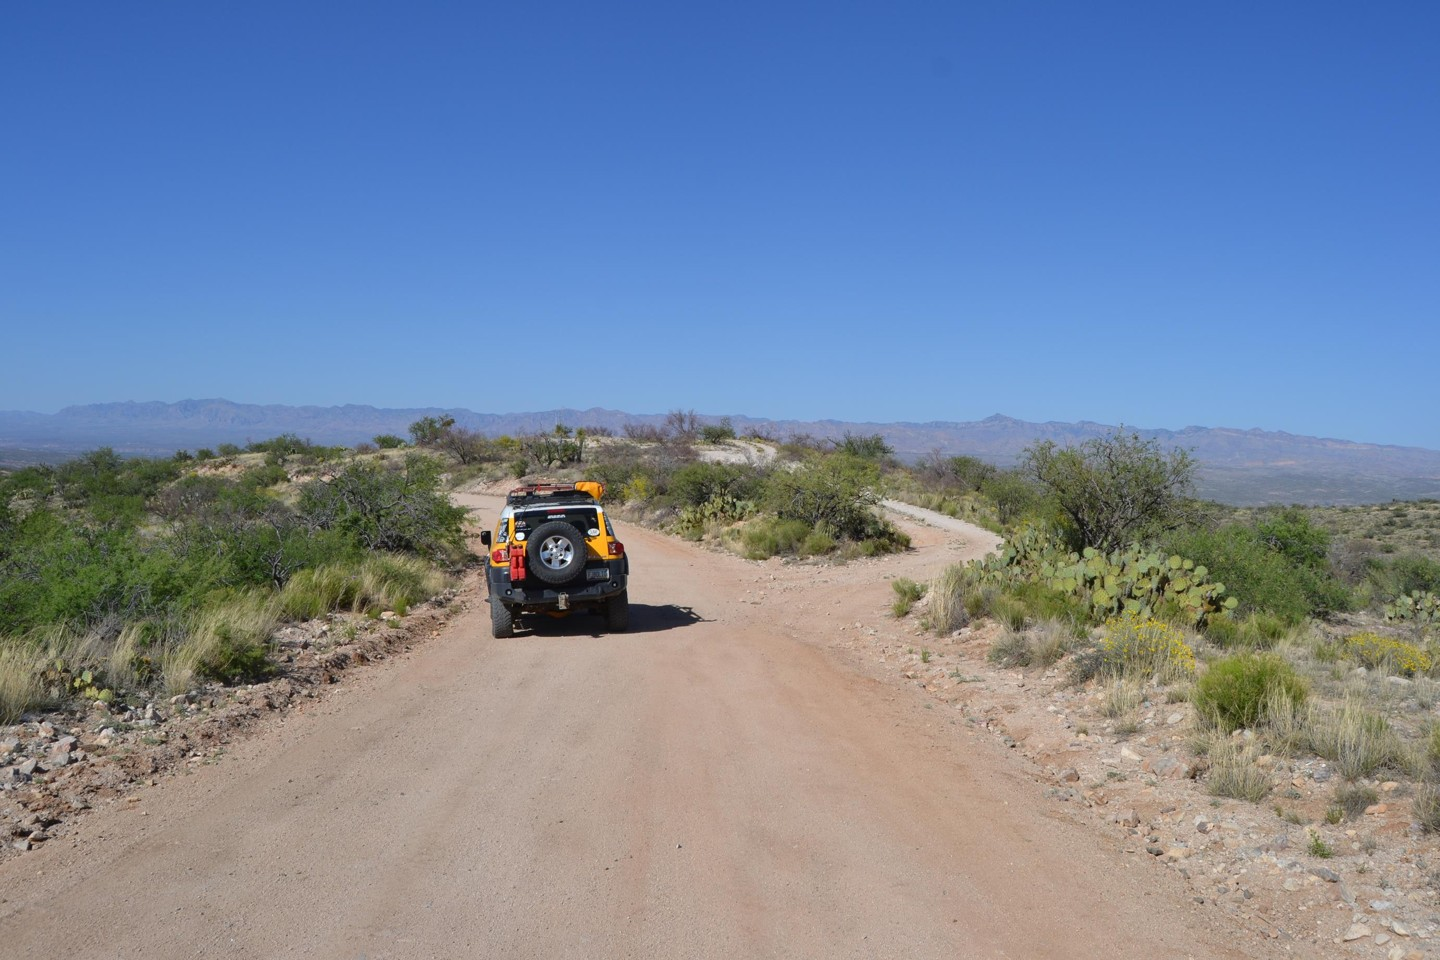 Redington Pass - Waypoint 41: No # 4x4 Road Crossing  Dead End East/Wash/Tanks/Corral West (Continue Straight)